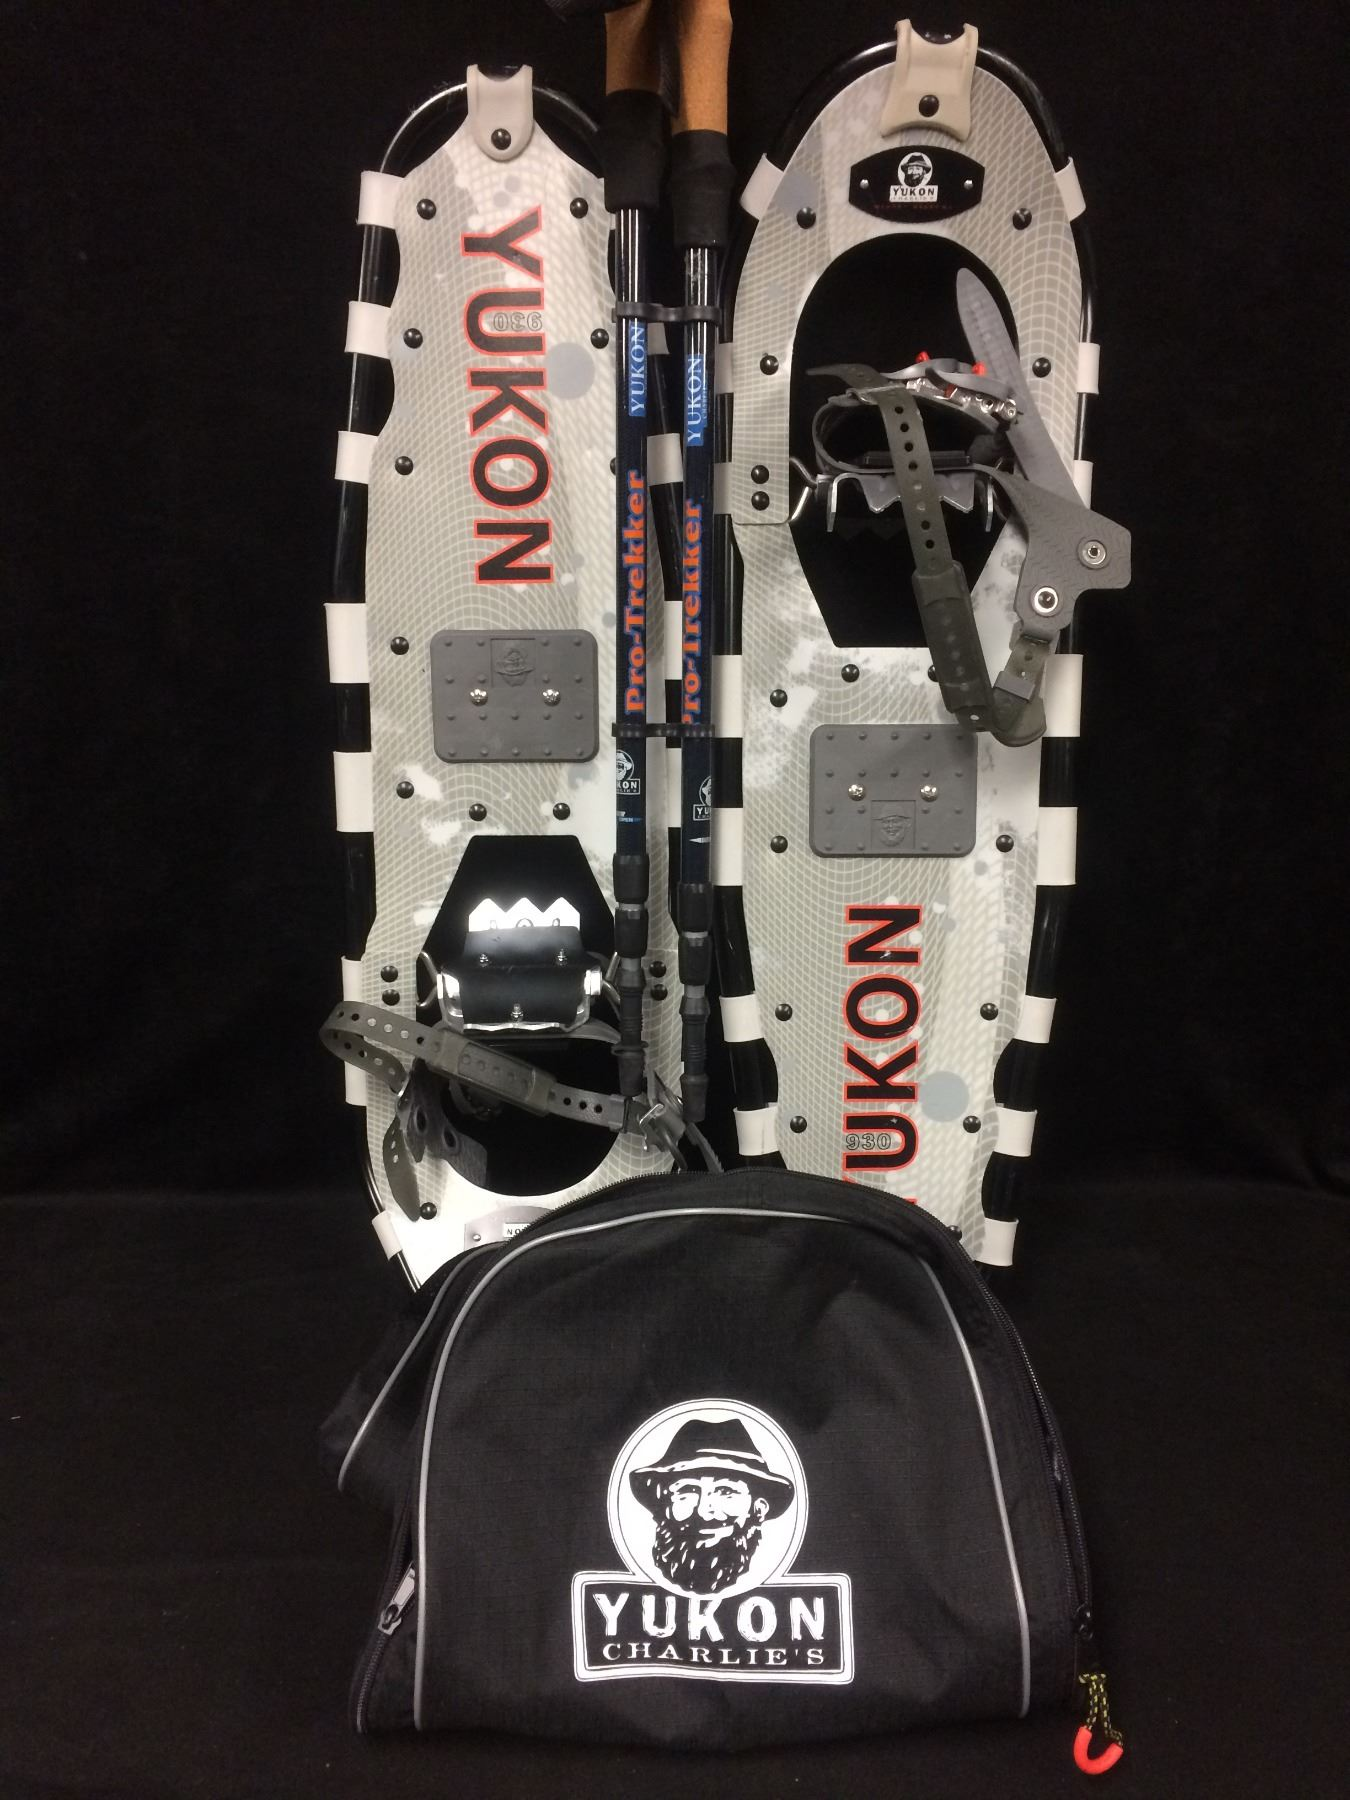 YUKON CHARLIE'S SNOW SHOES COMPLETE W/ CARRYING BAG